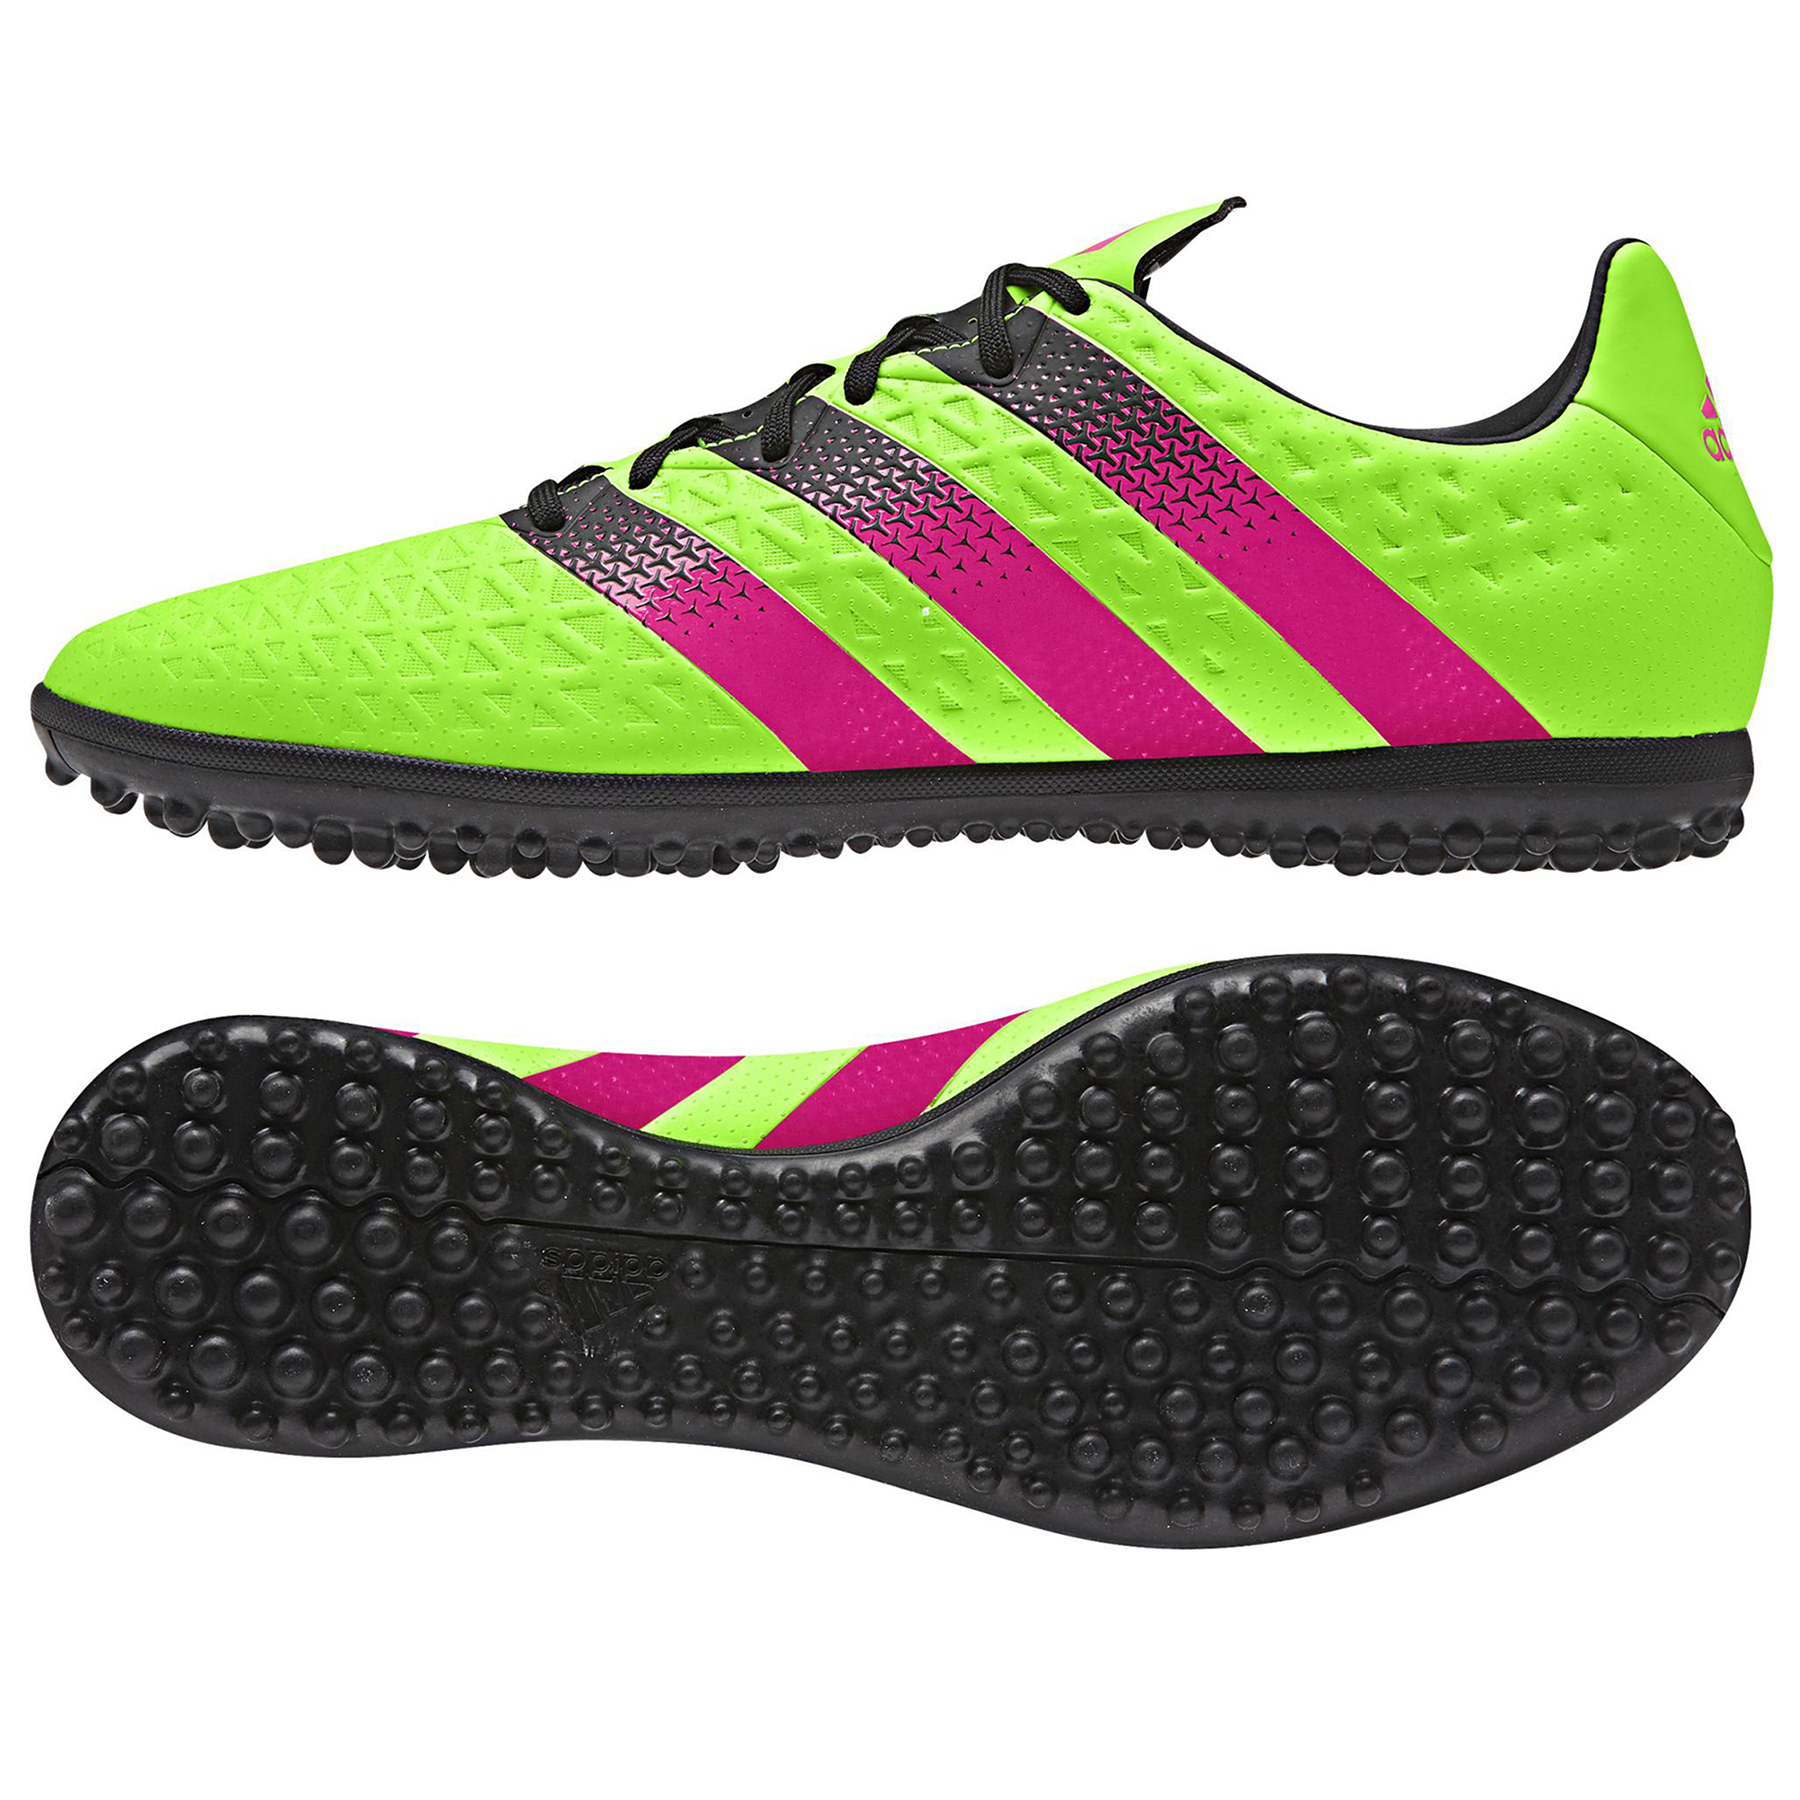 adidas Ace 16.3 Astroturf Trainers - Green